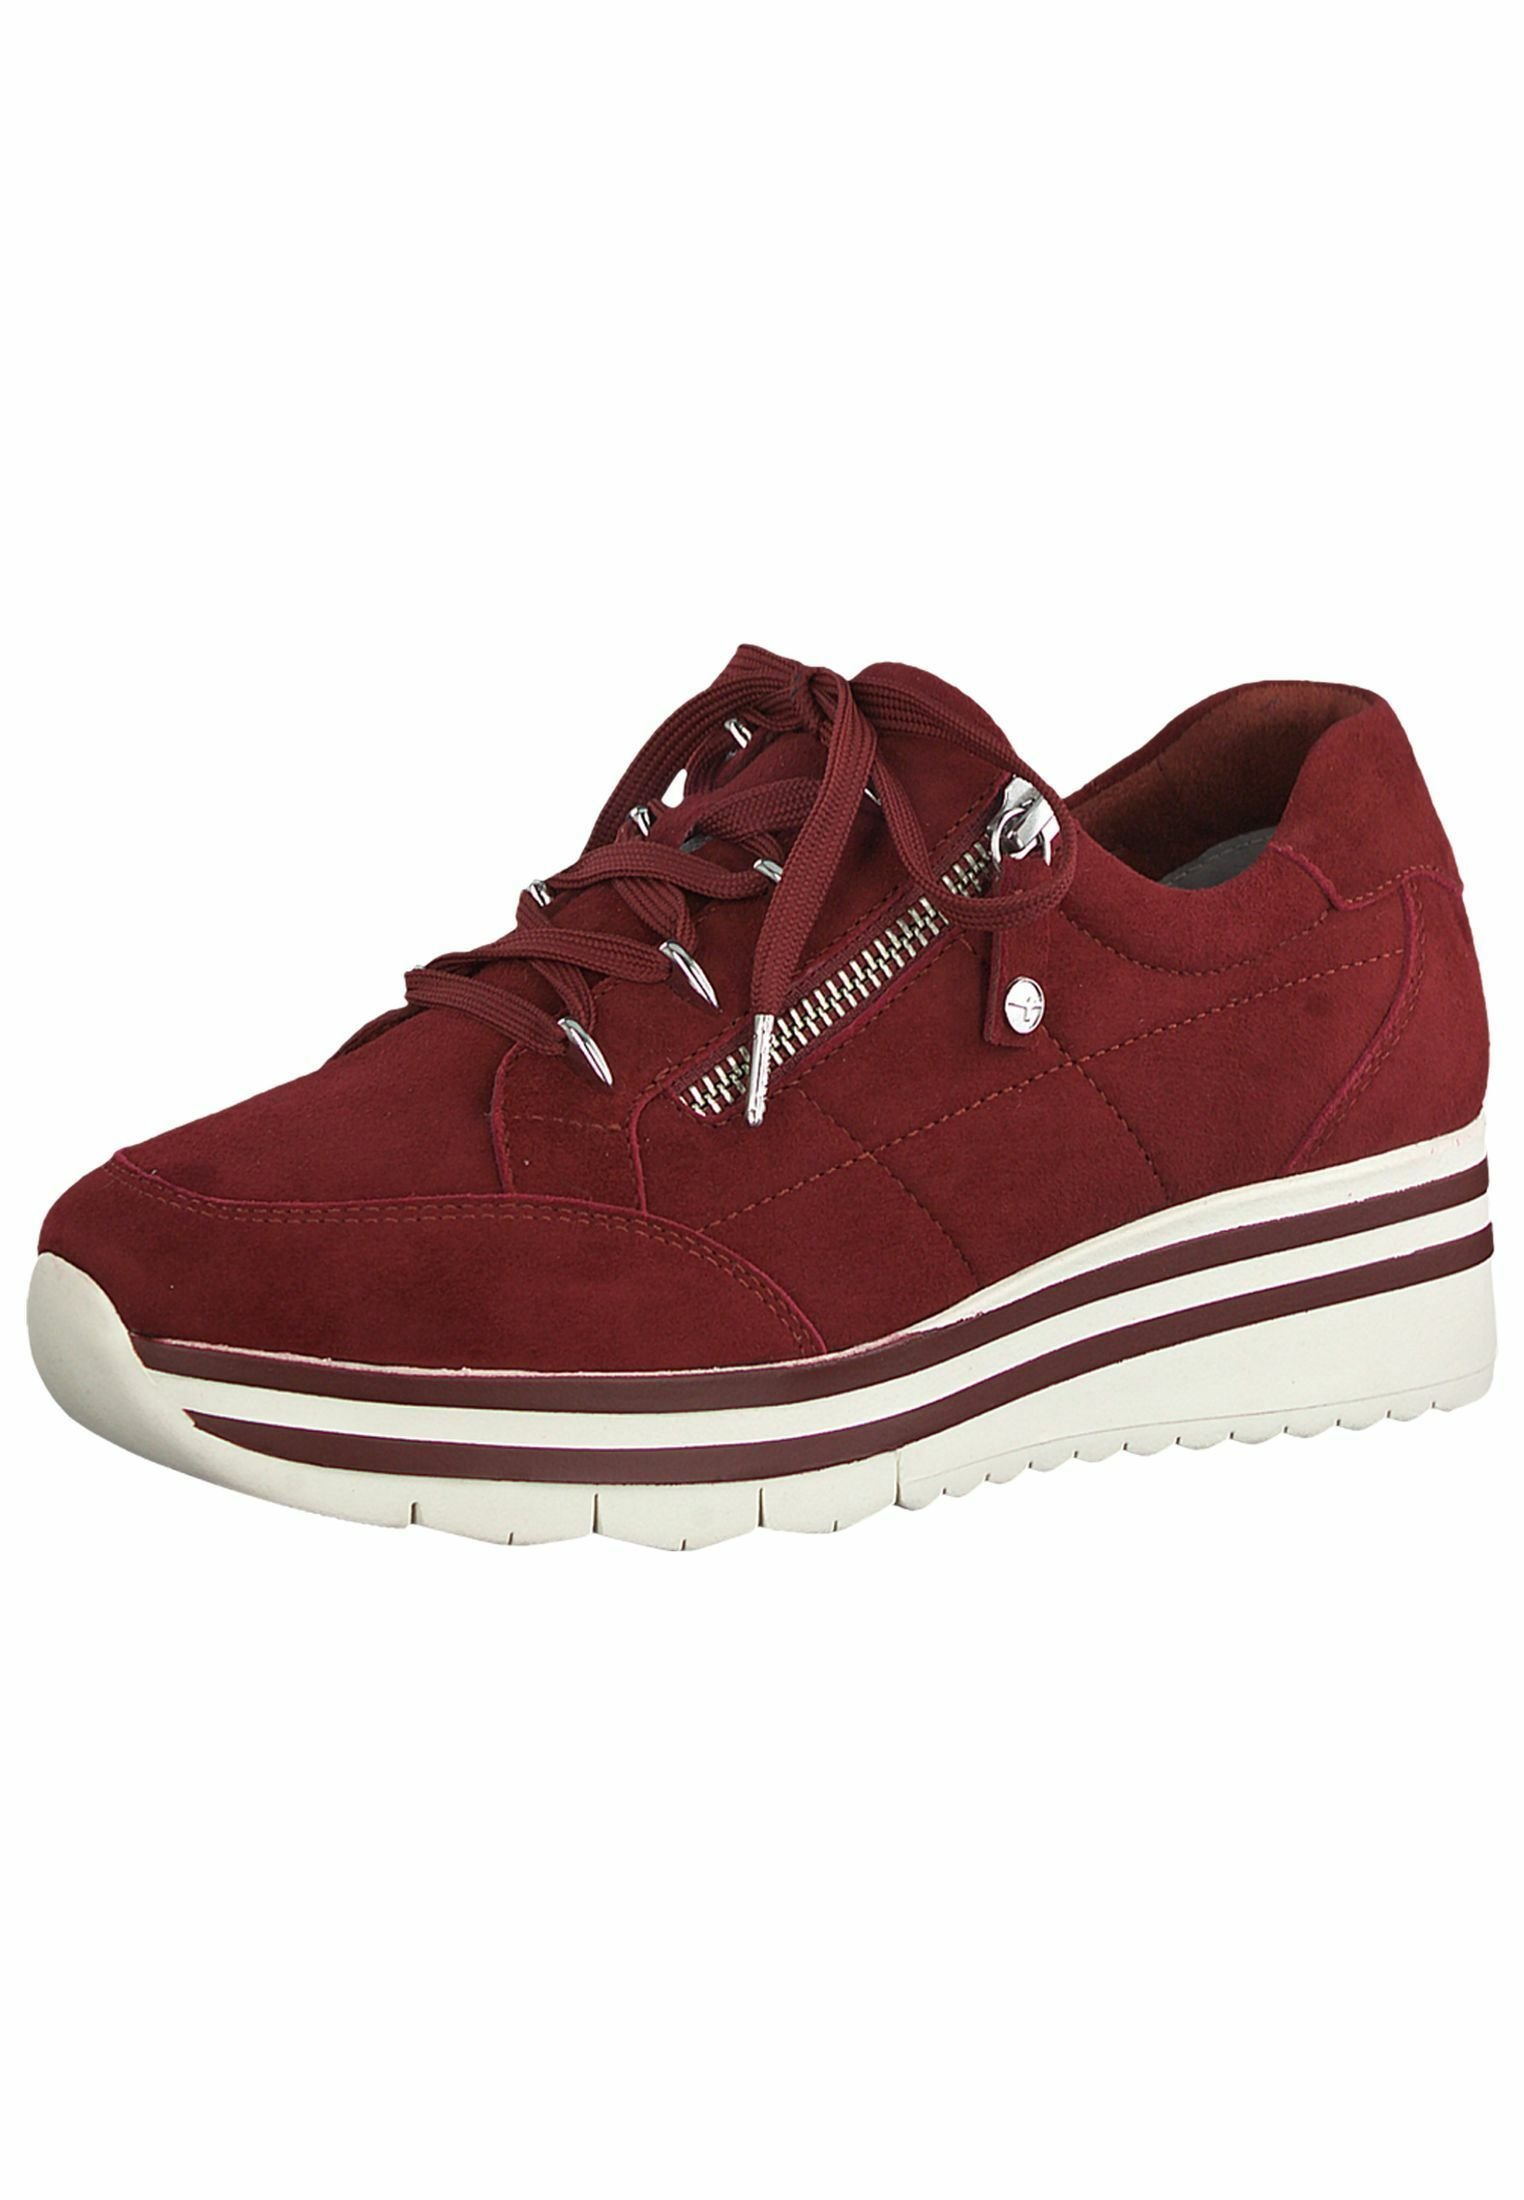 Tamaris Pure Relax LACE UP Sneaker low scarlet suede/rot